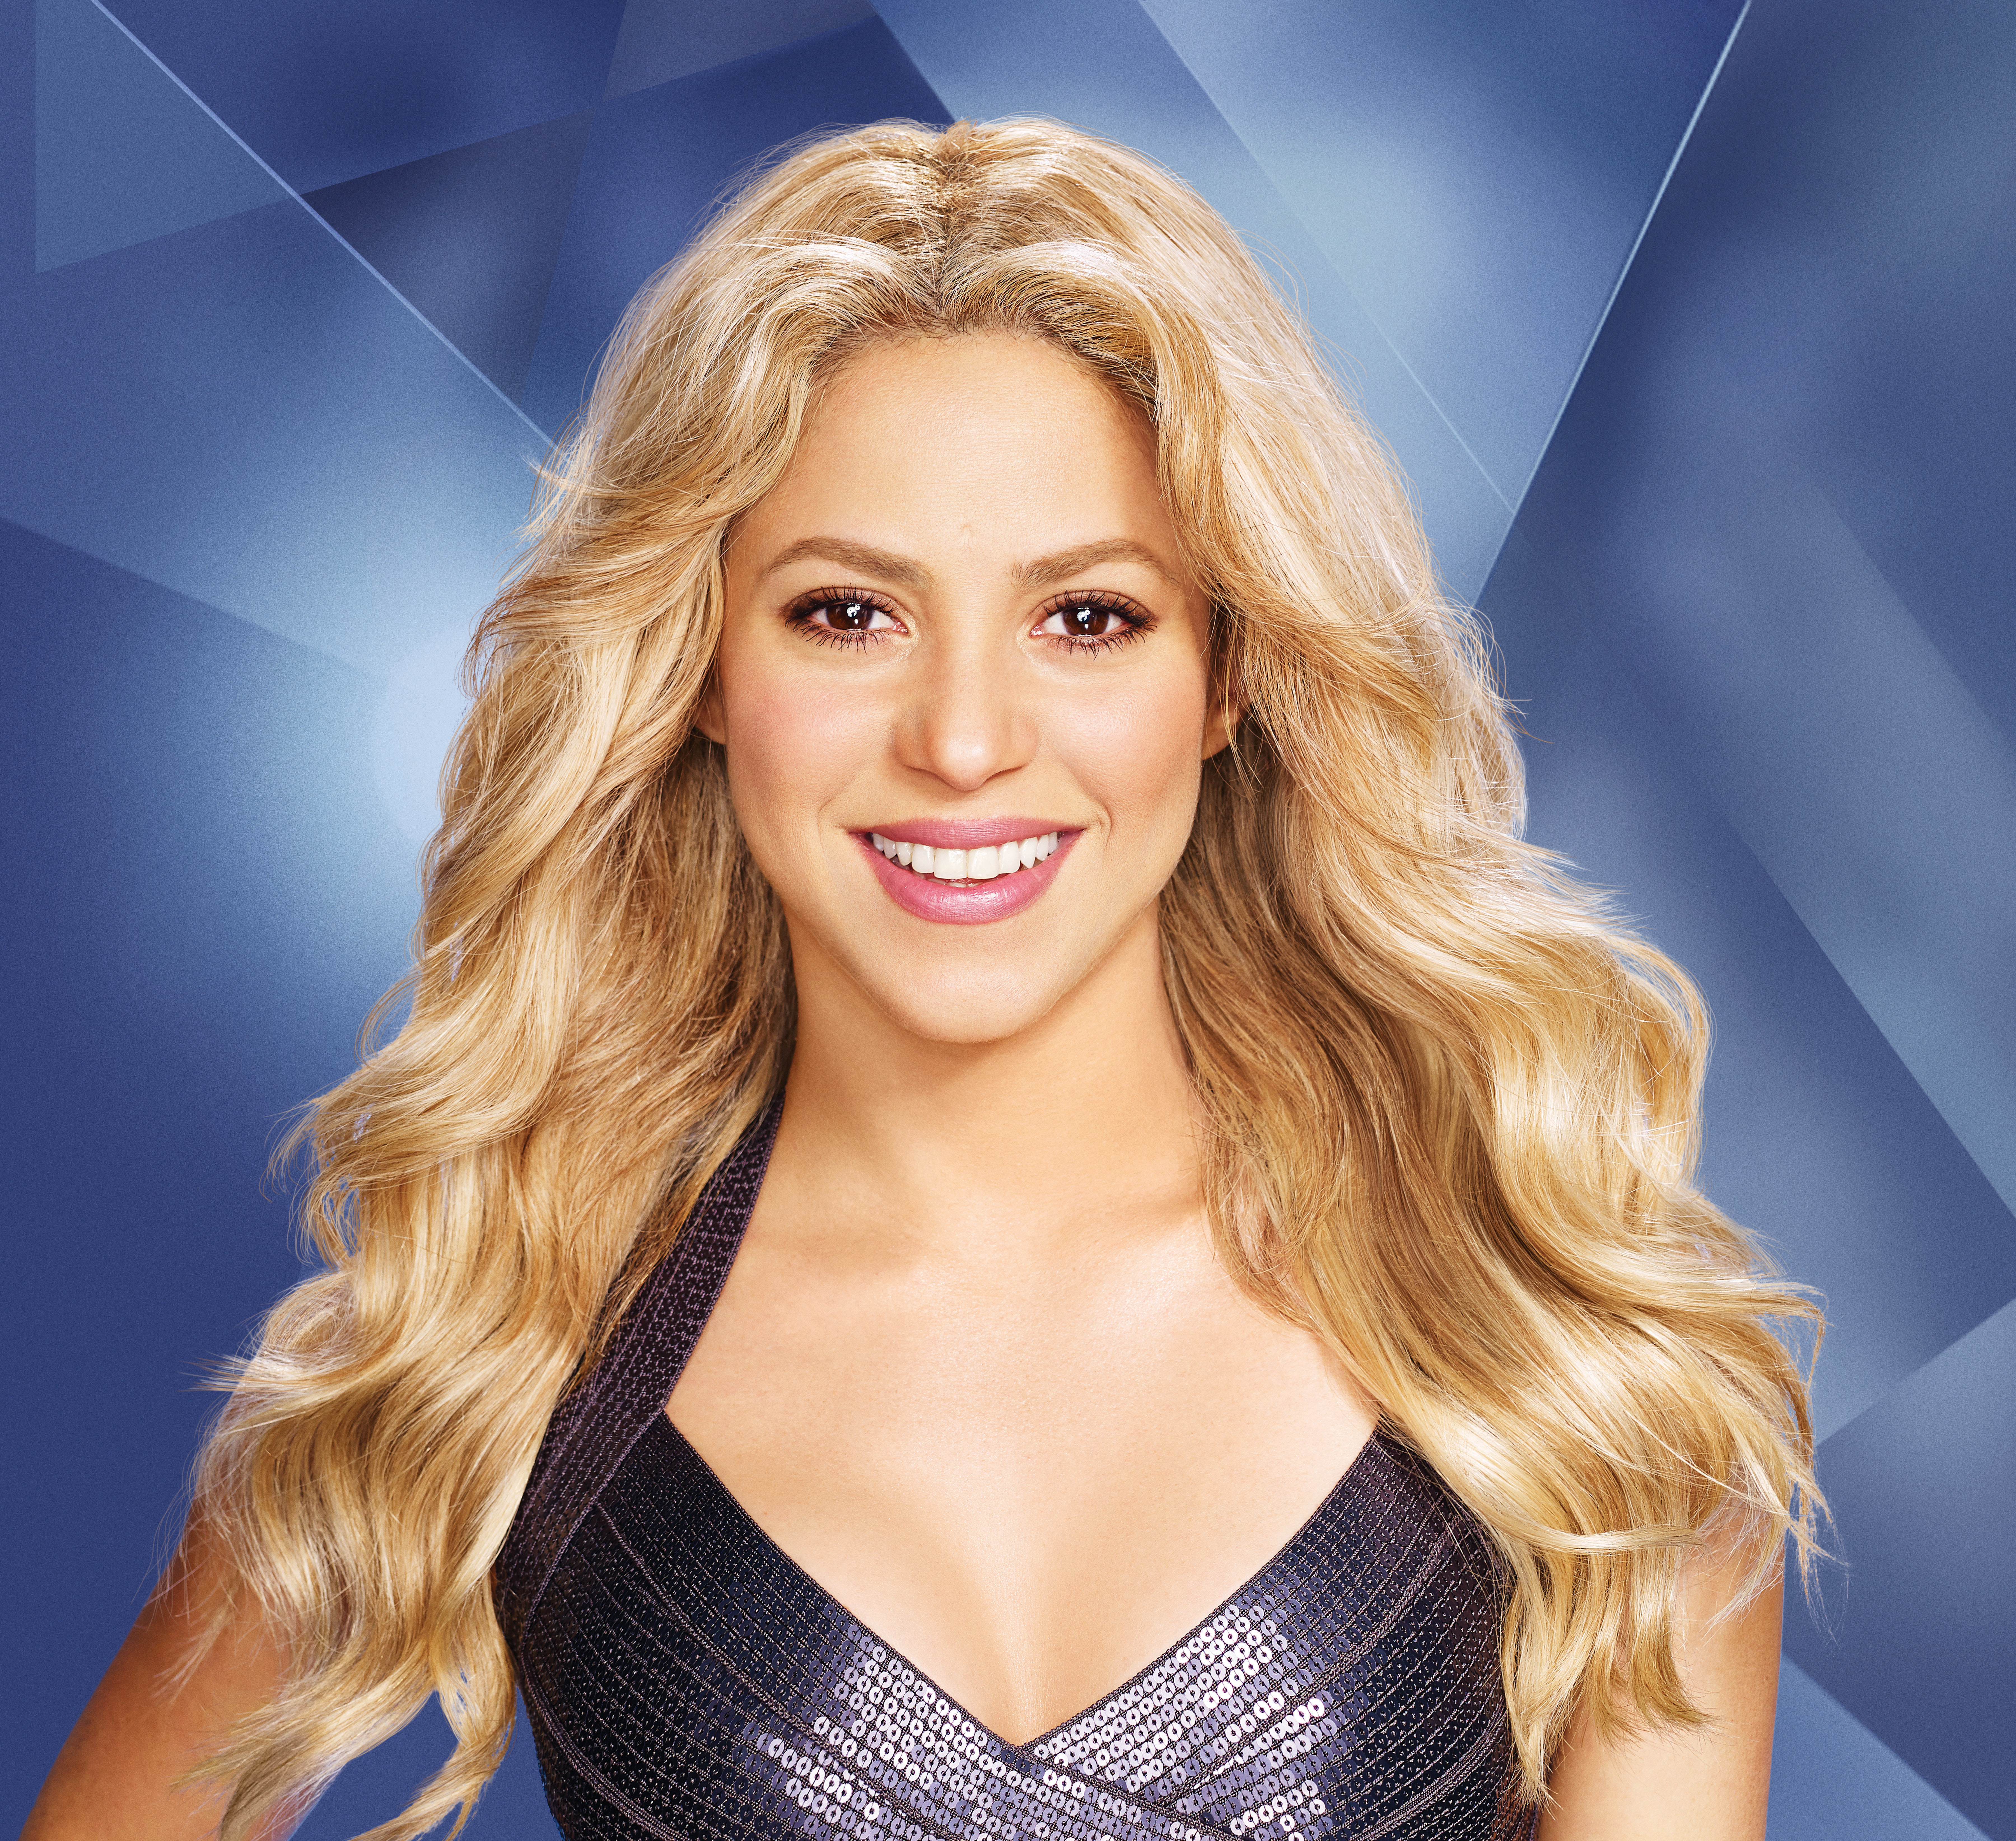 Shakira Colombian Singer and Songwriter